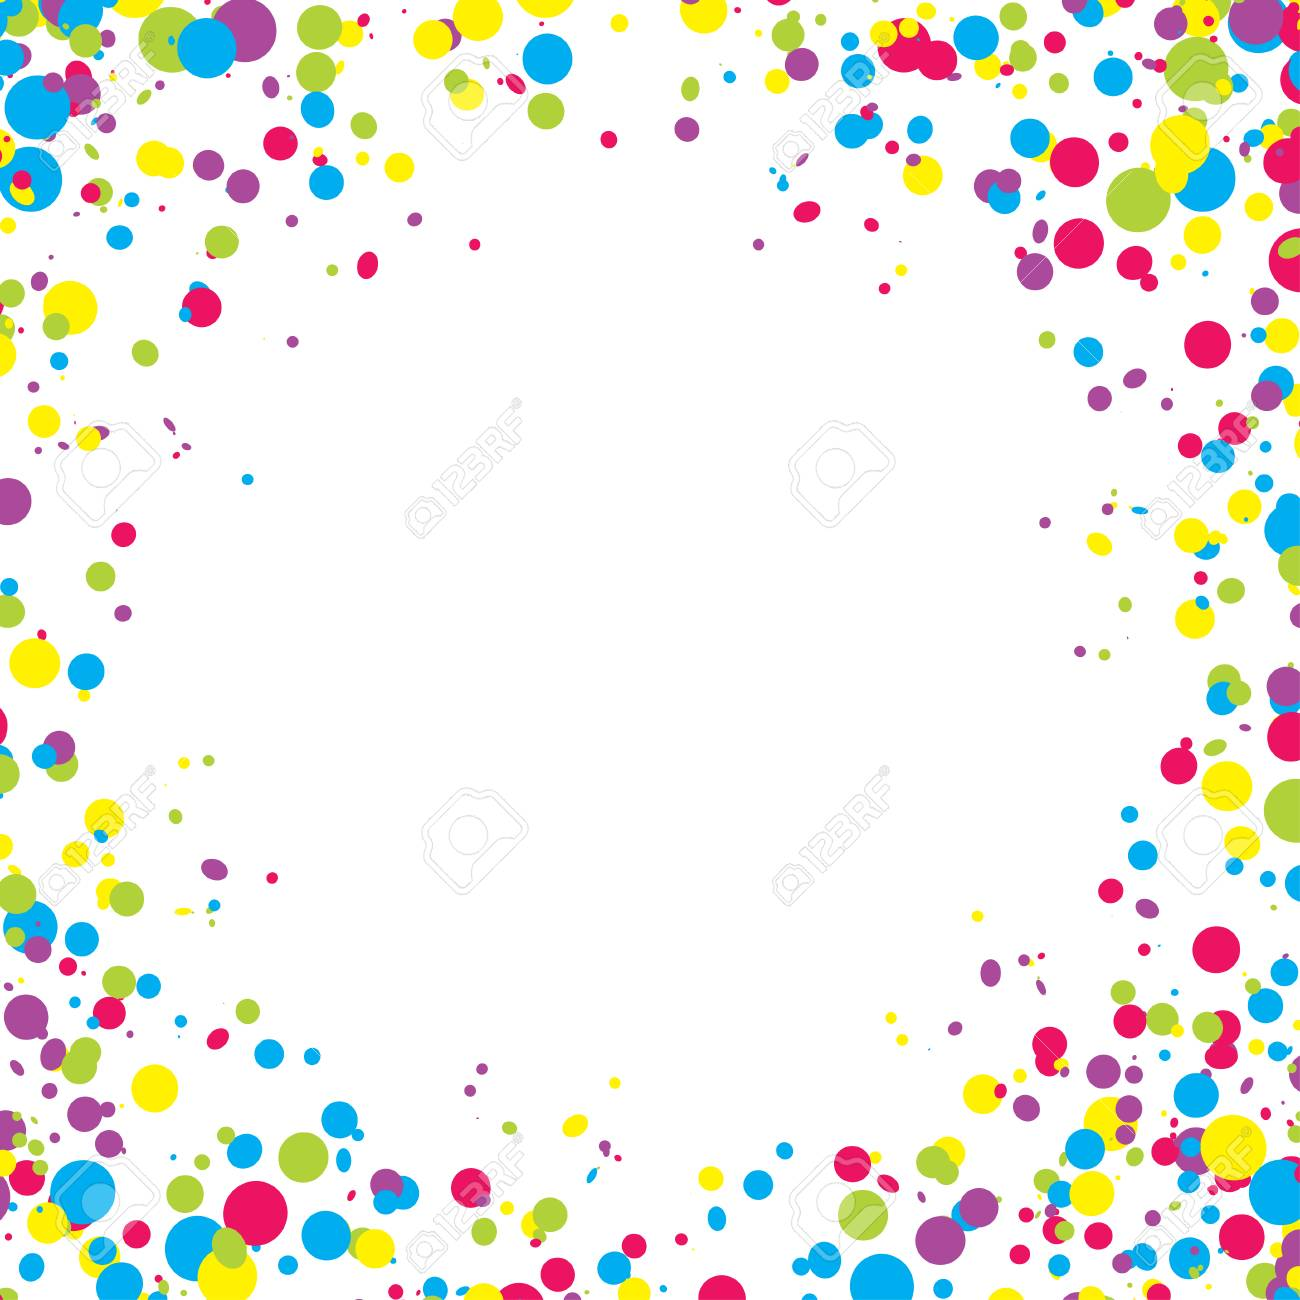 Abstract background with falling multicolored confetti. Empty space for text. Background for holiday cards, greetings. - 84156318